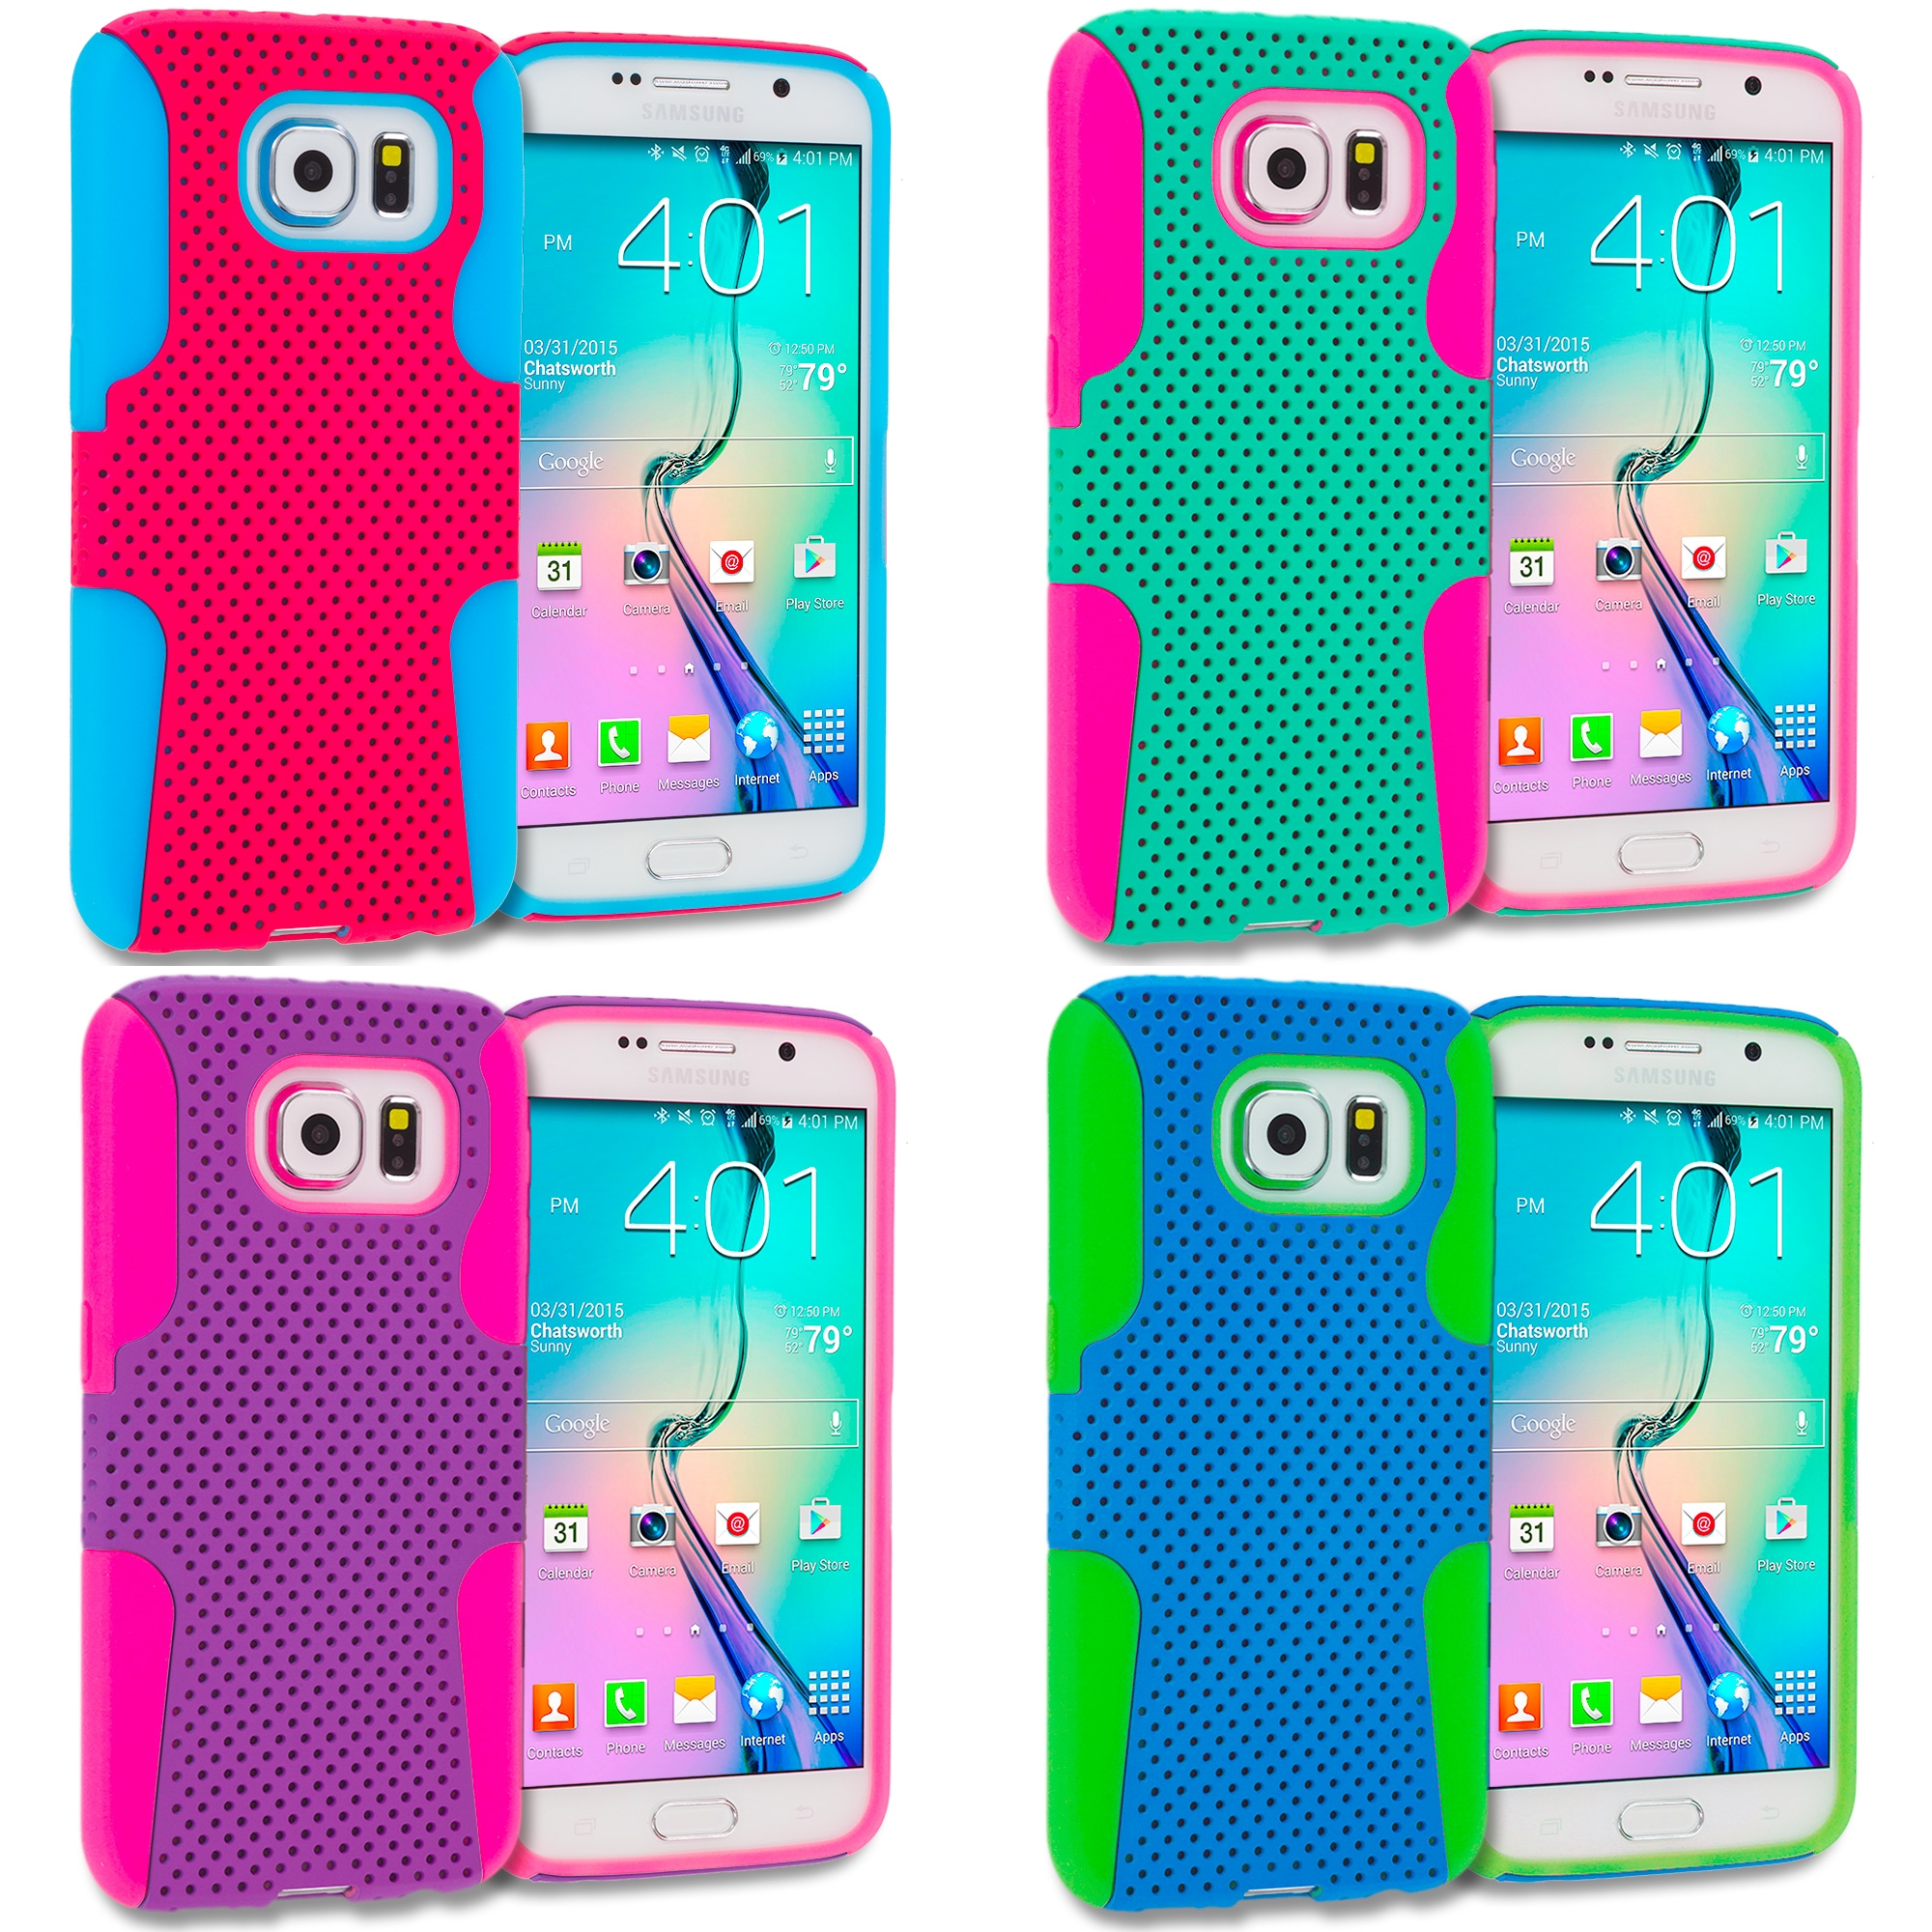 Samsung Galaxy S6 Combo Pack : Baby Blue / Hot Pink Hybrid Mesh Hard/Soft Case Cover